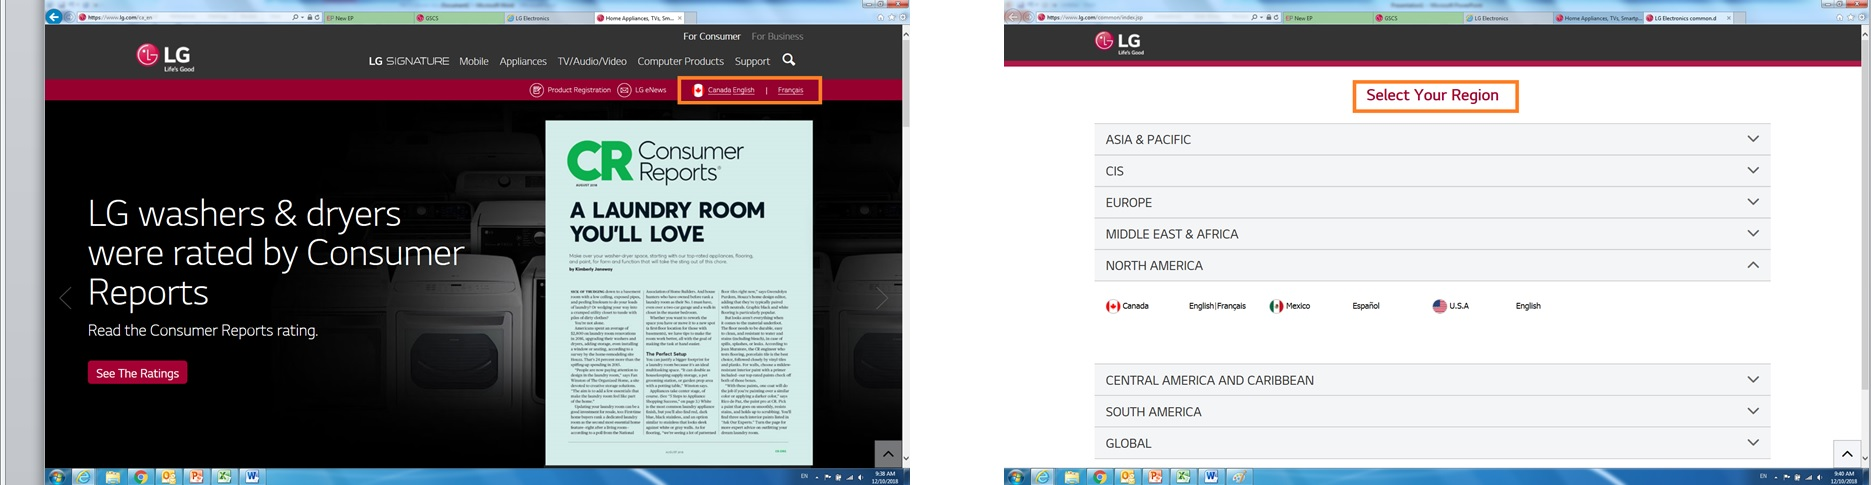 LG Help Library: LG TV Powers On and Off Intermittently | LG